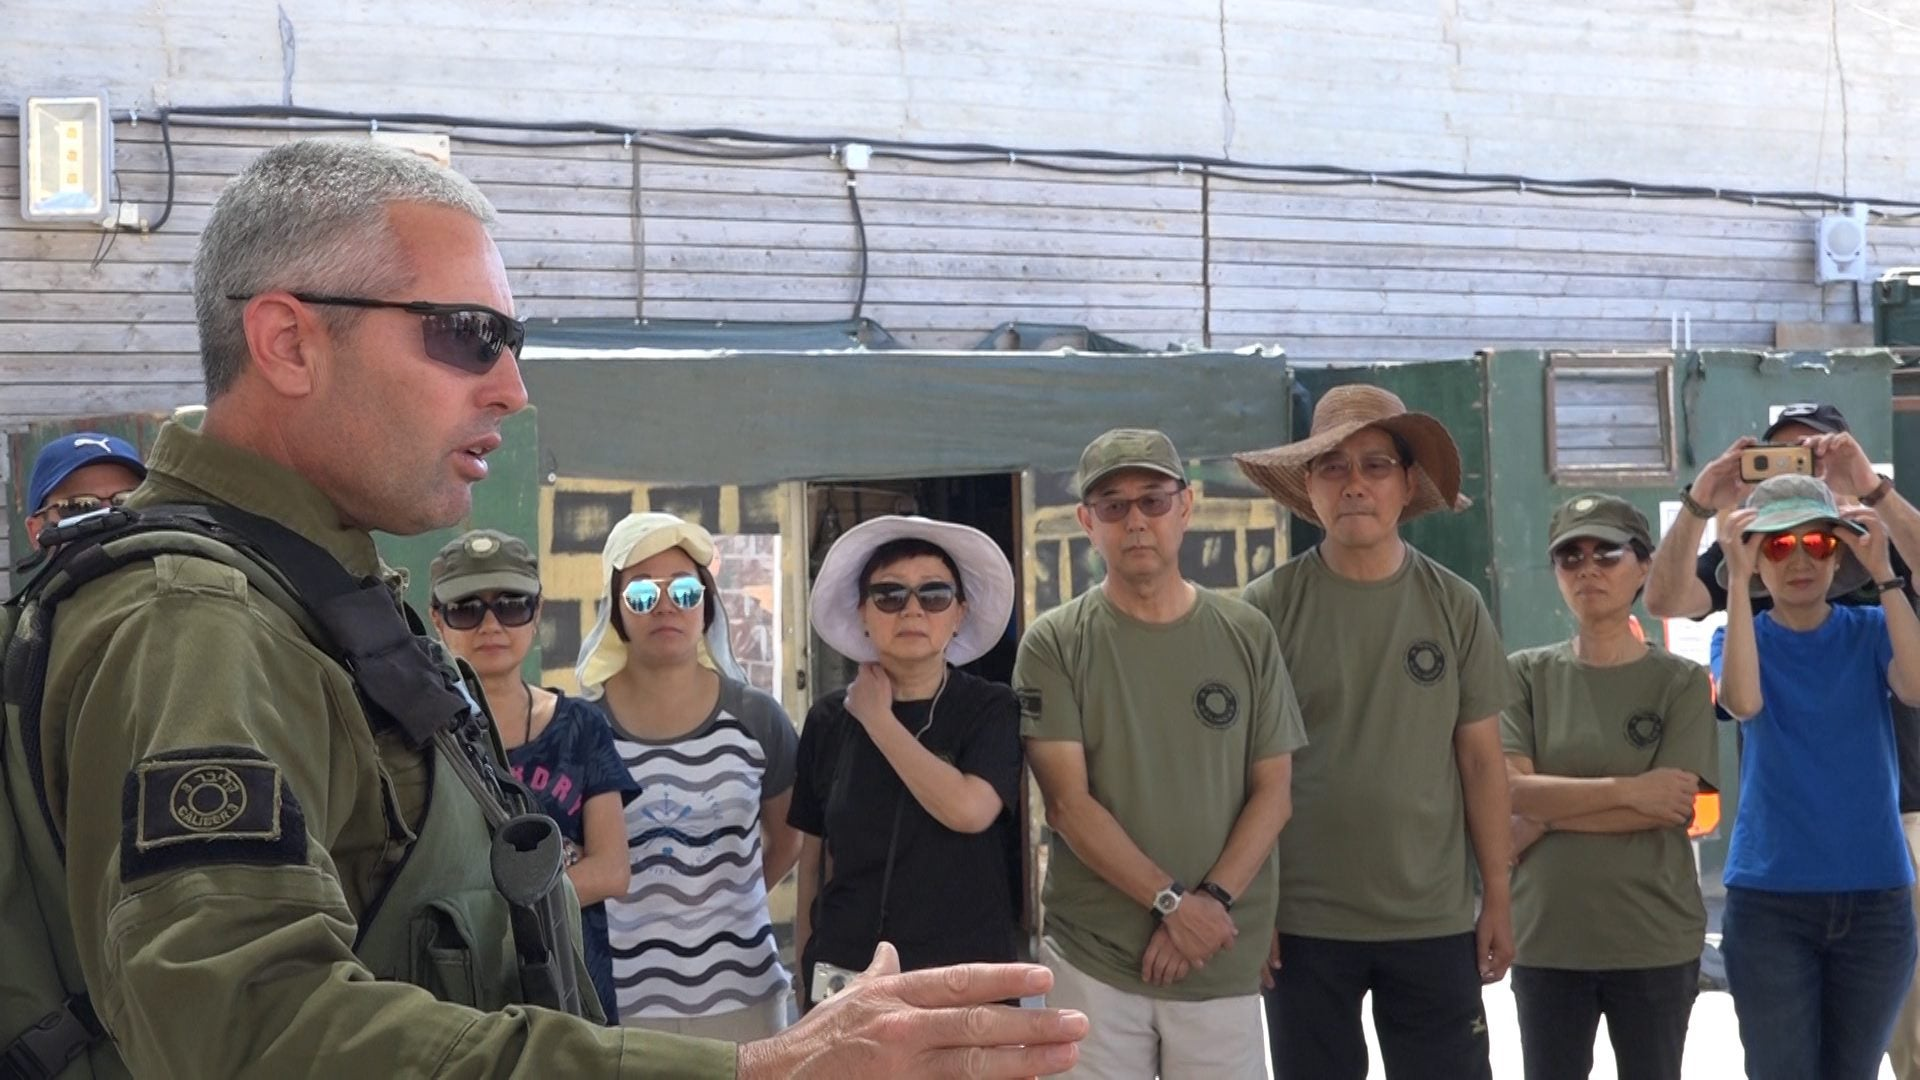 An instructor teaching tourists from Hong Kong at the Caliber 3 counterterrorism and security training academy, July 2017.